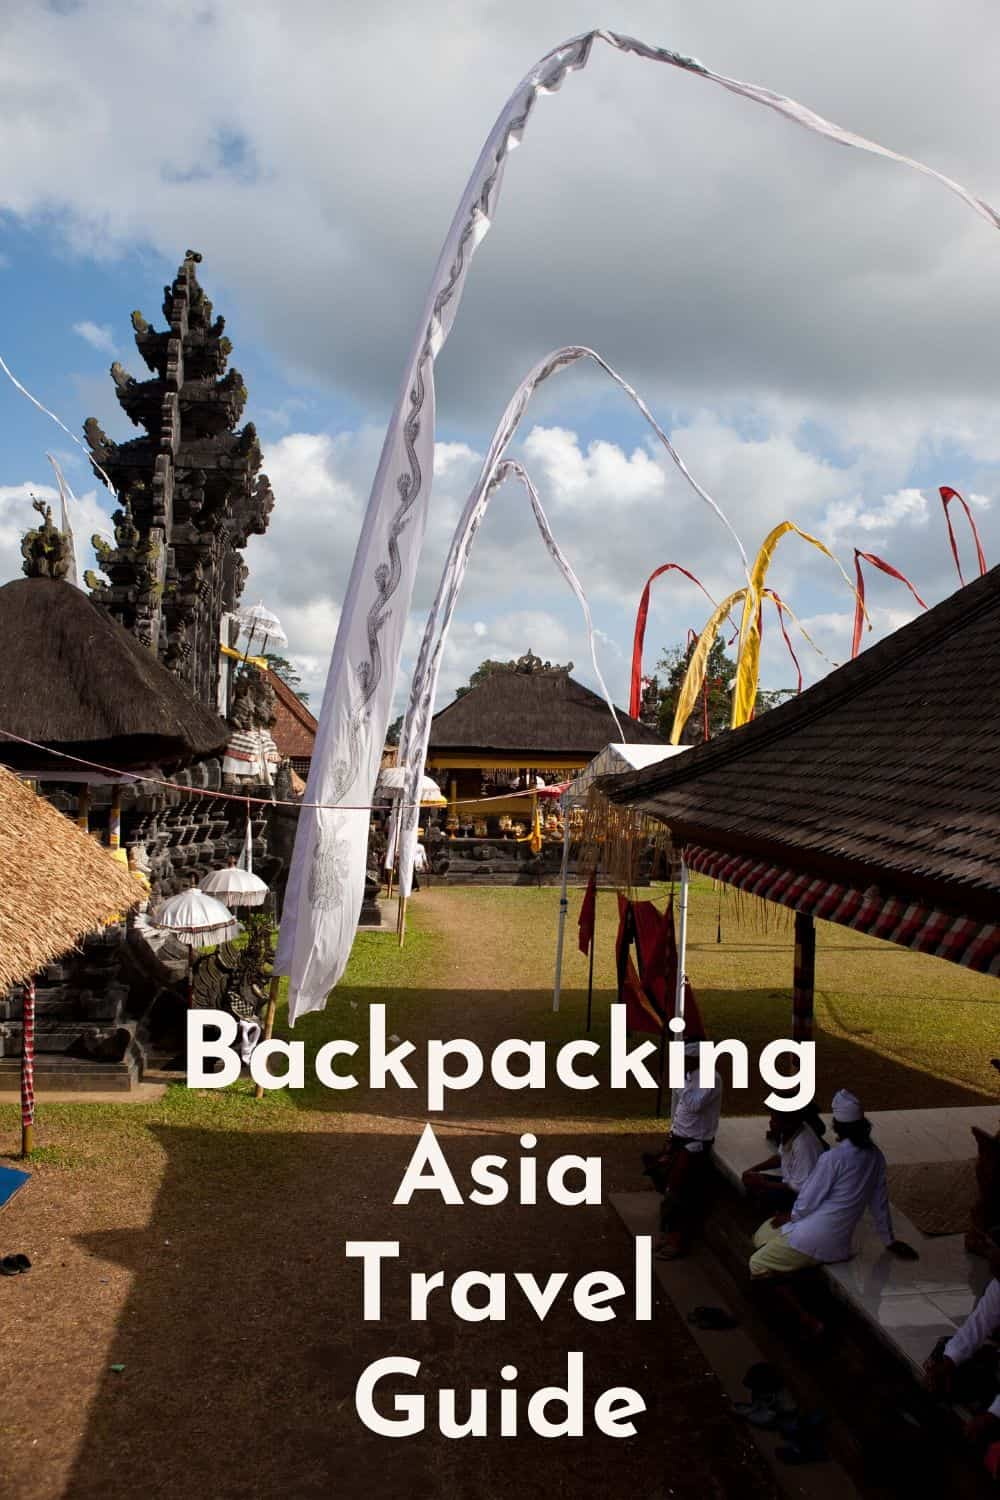 Backpacking Asia Travel Guide - My Lessons Learned